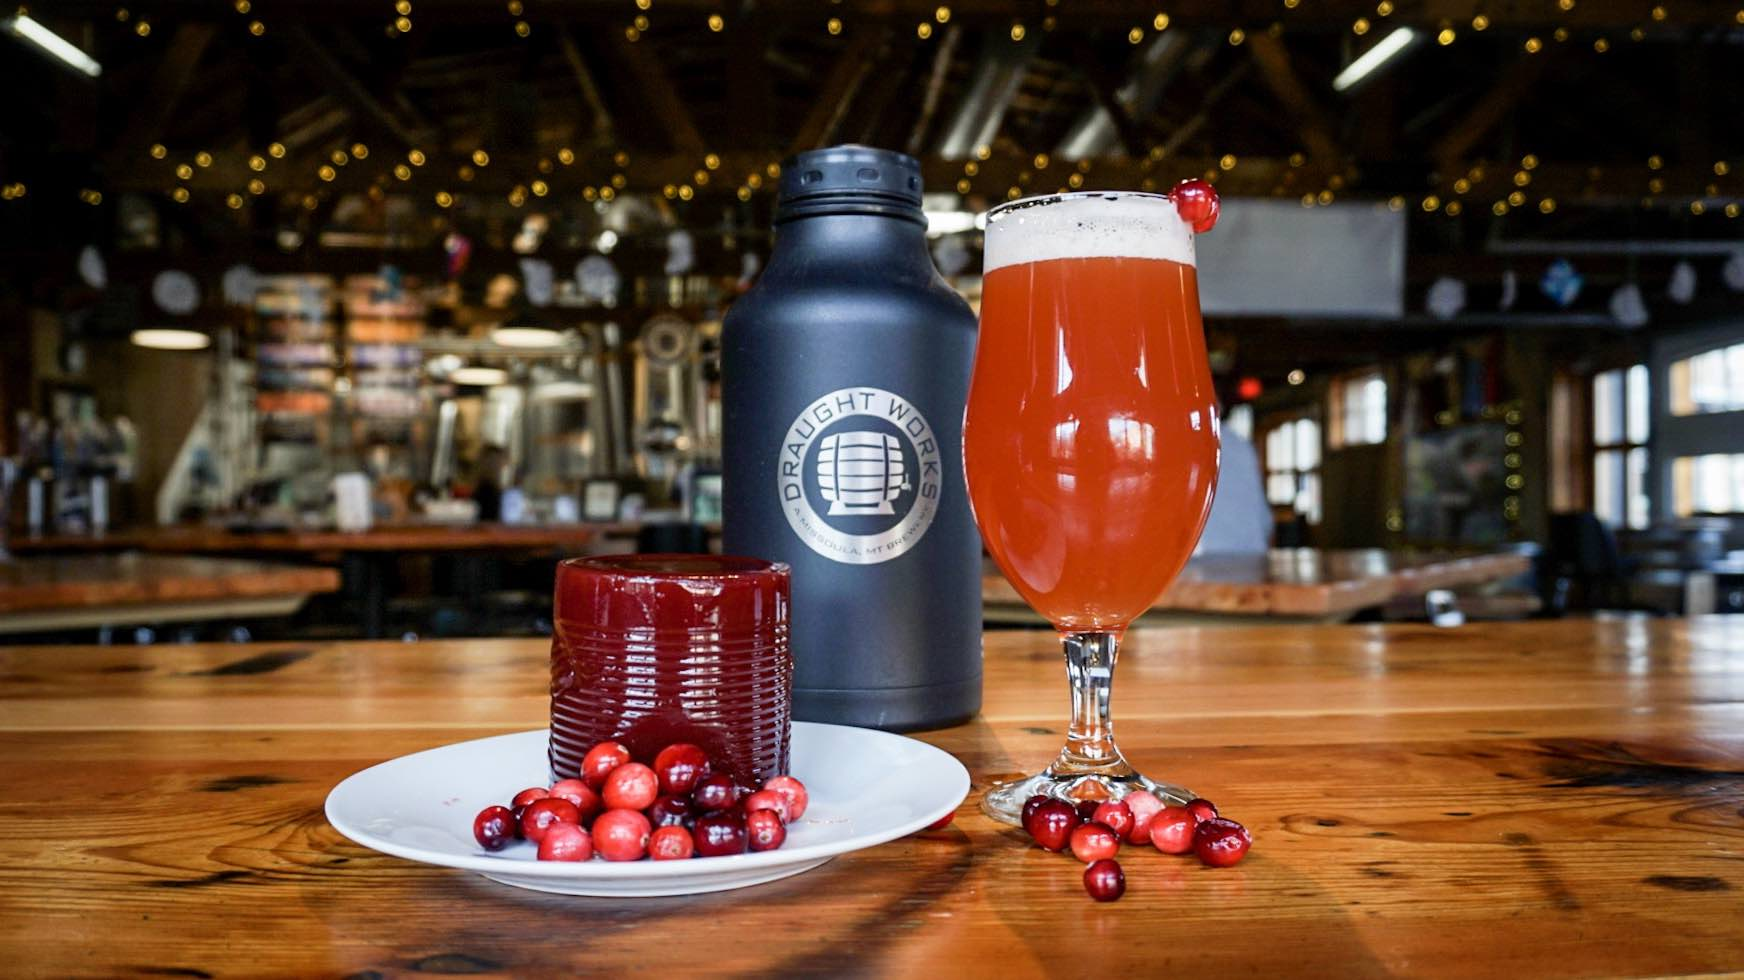 Draught Works Missoula Cranberry Gose is just one of the festive fall beers on tap in Missoula